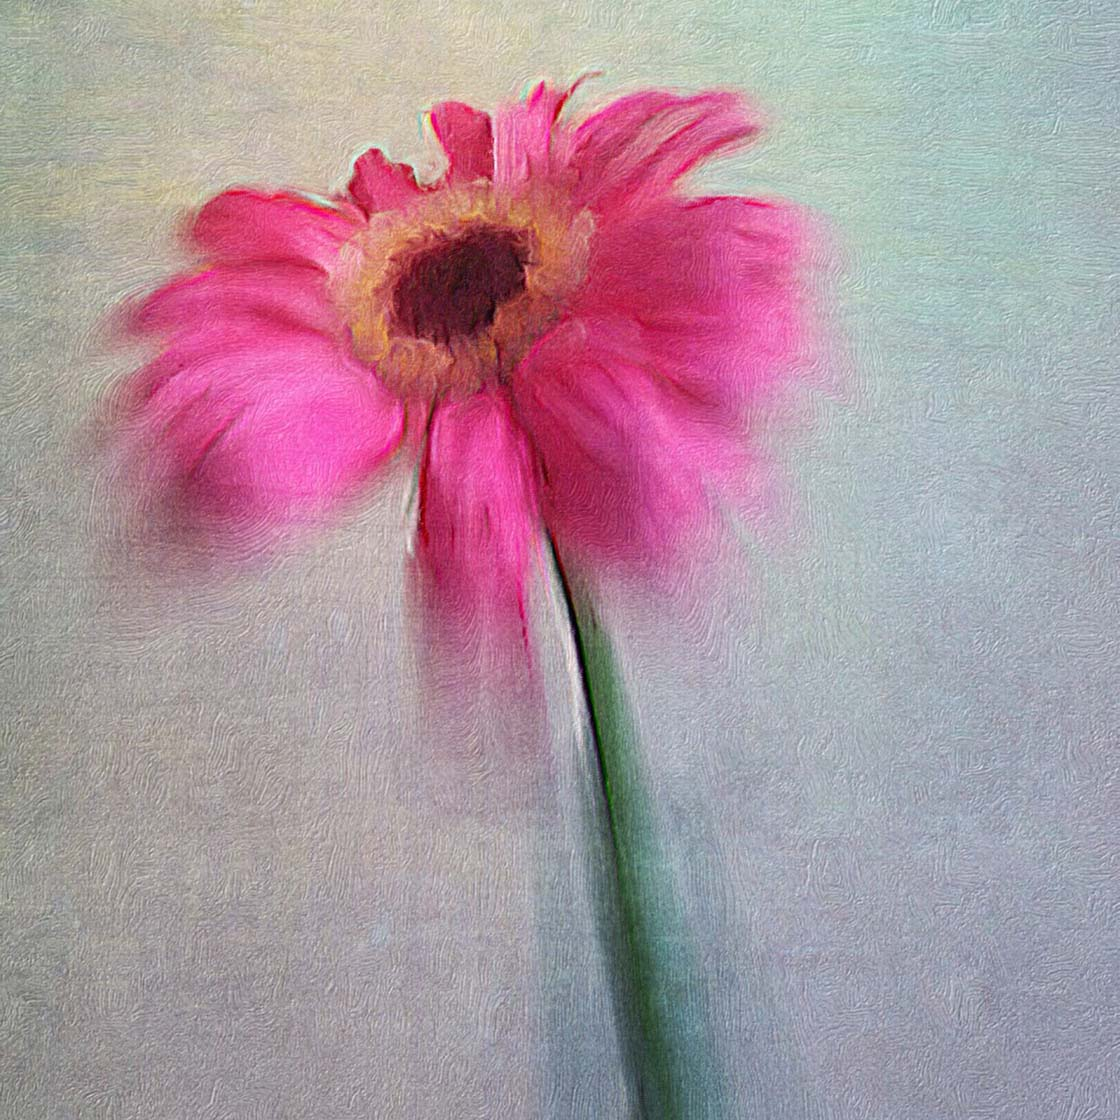 5 Ways To Enhance Your Flower Photos With iPhone Apps